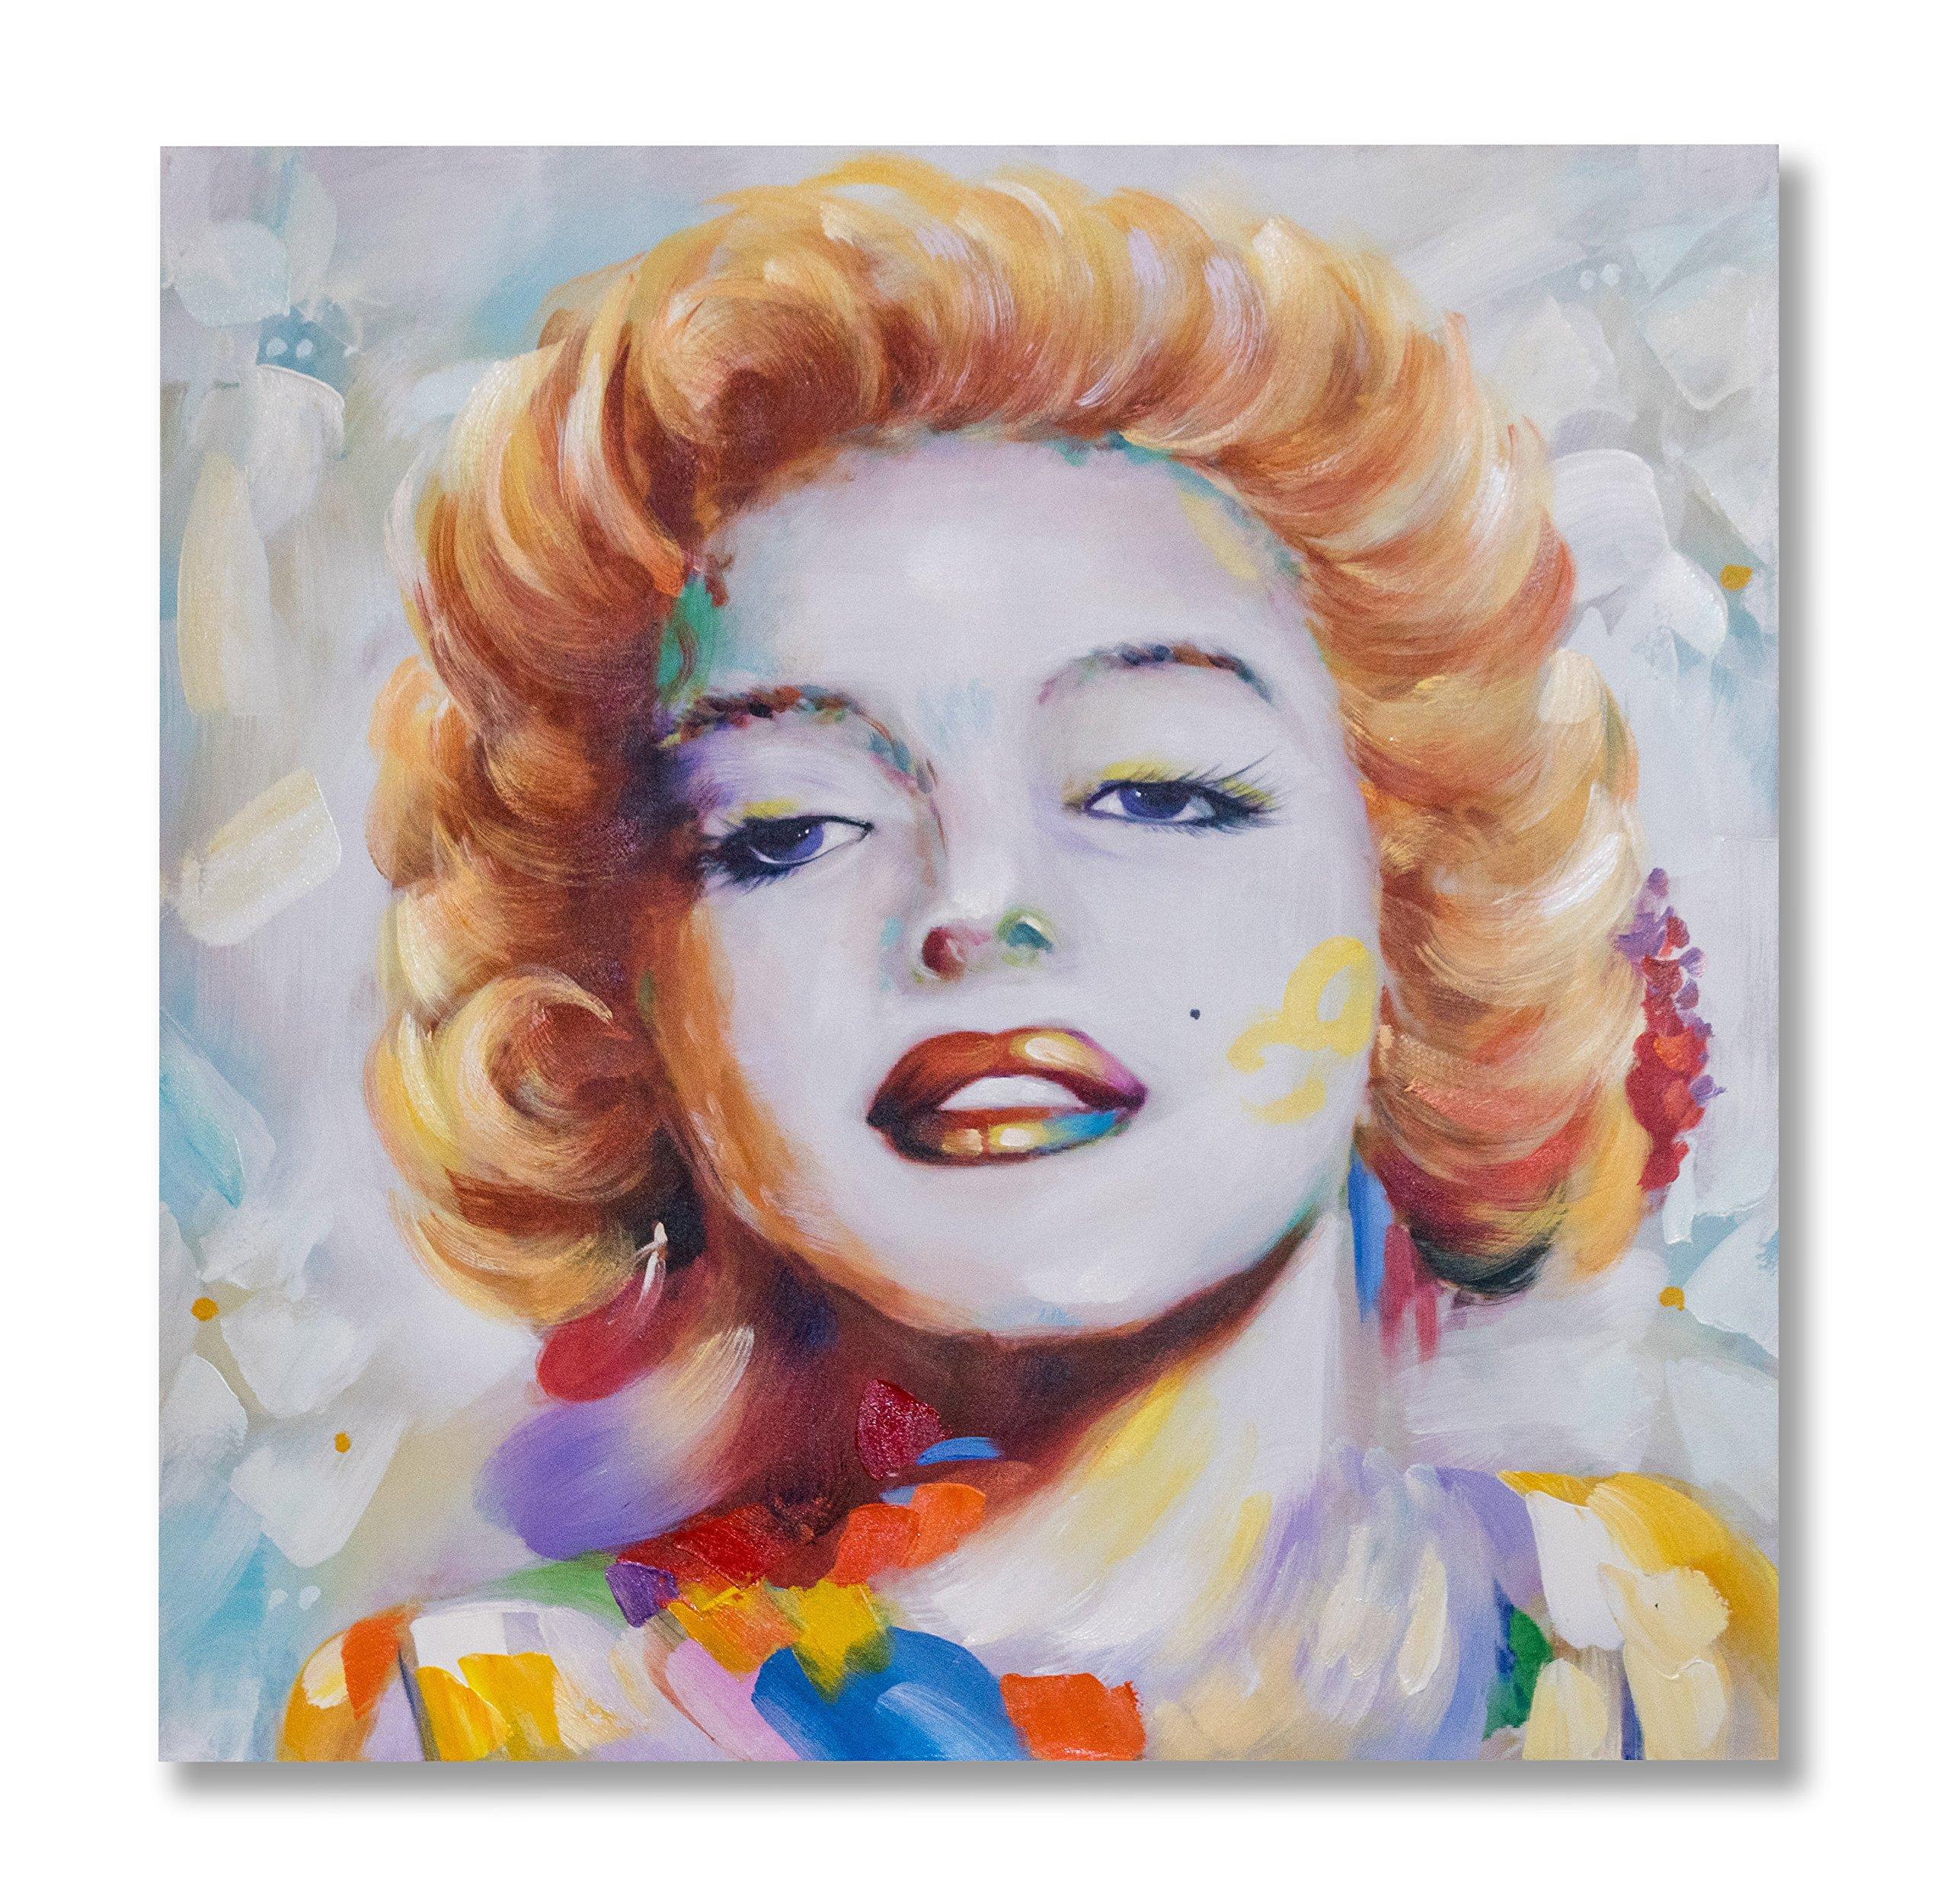 """In Liu Of   Modern Oil Painting on Canvas """"Hollywood Icon"""" (Marilyn Monroe) Professional, Fine Acrylic Finish   Layered Textures, Vibrant Colors   Contemporary Wall Art for Home or Office   40'' x 40''"""